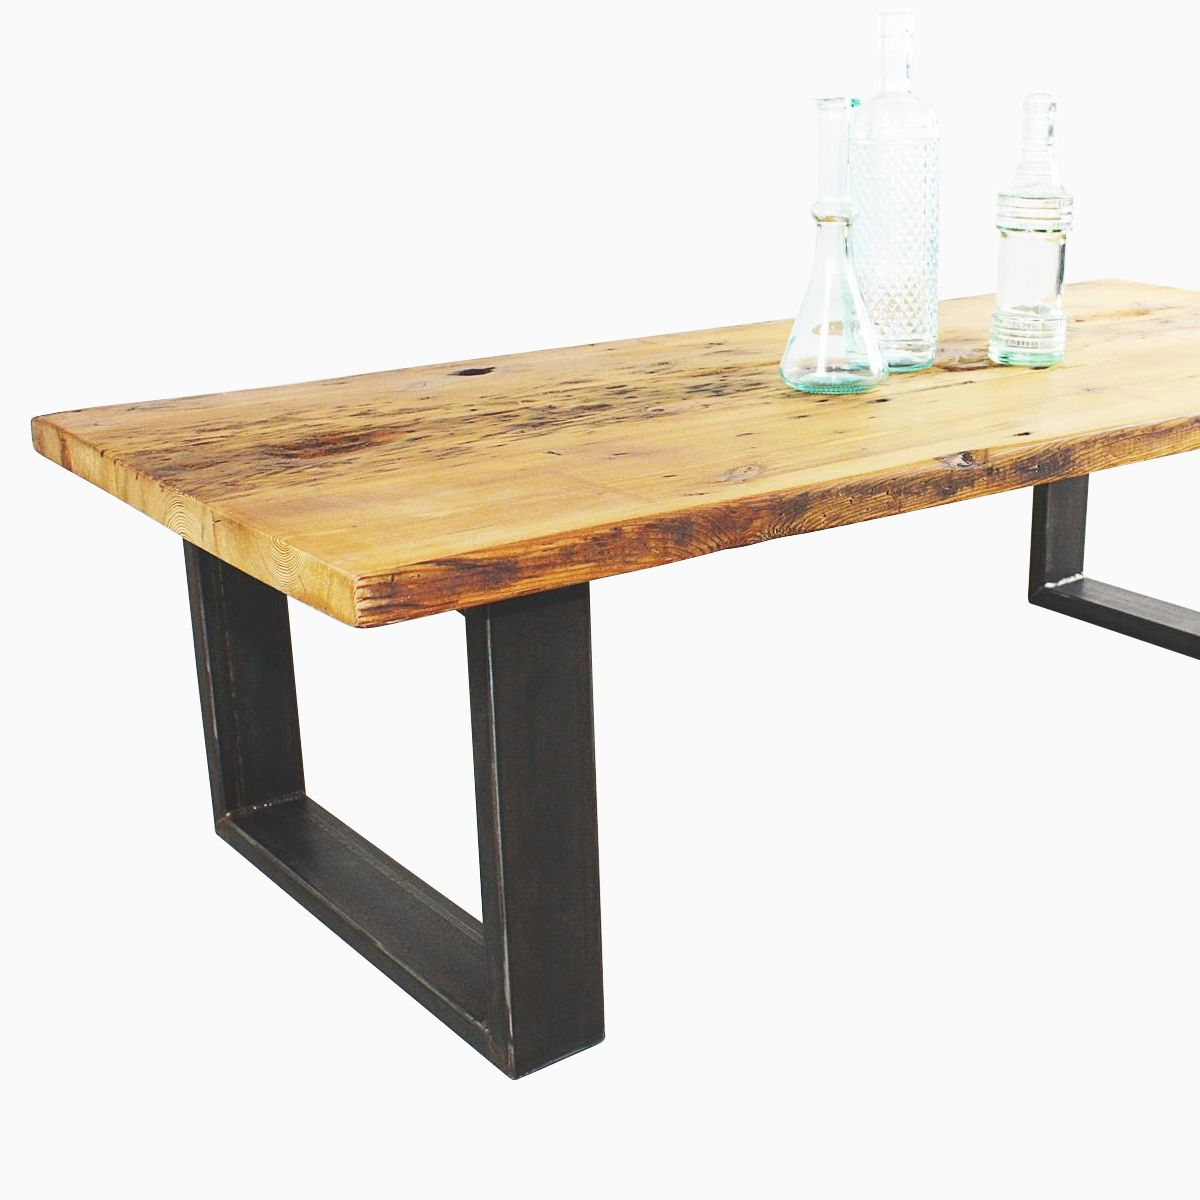 Buy A Hand Made Reclaimed Pine Coffee Table Made To Order From What We Make